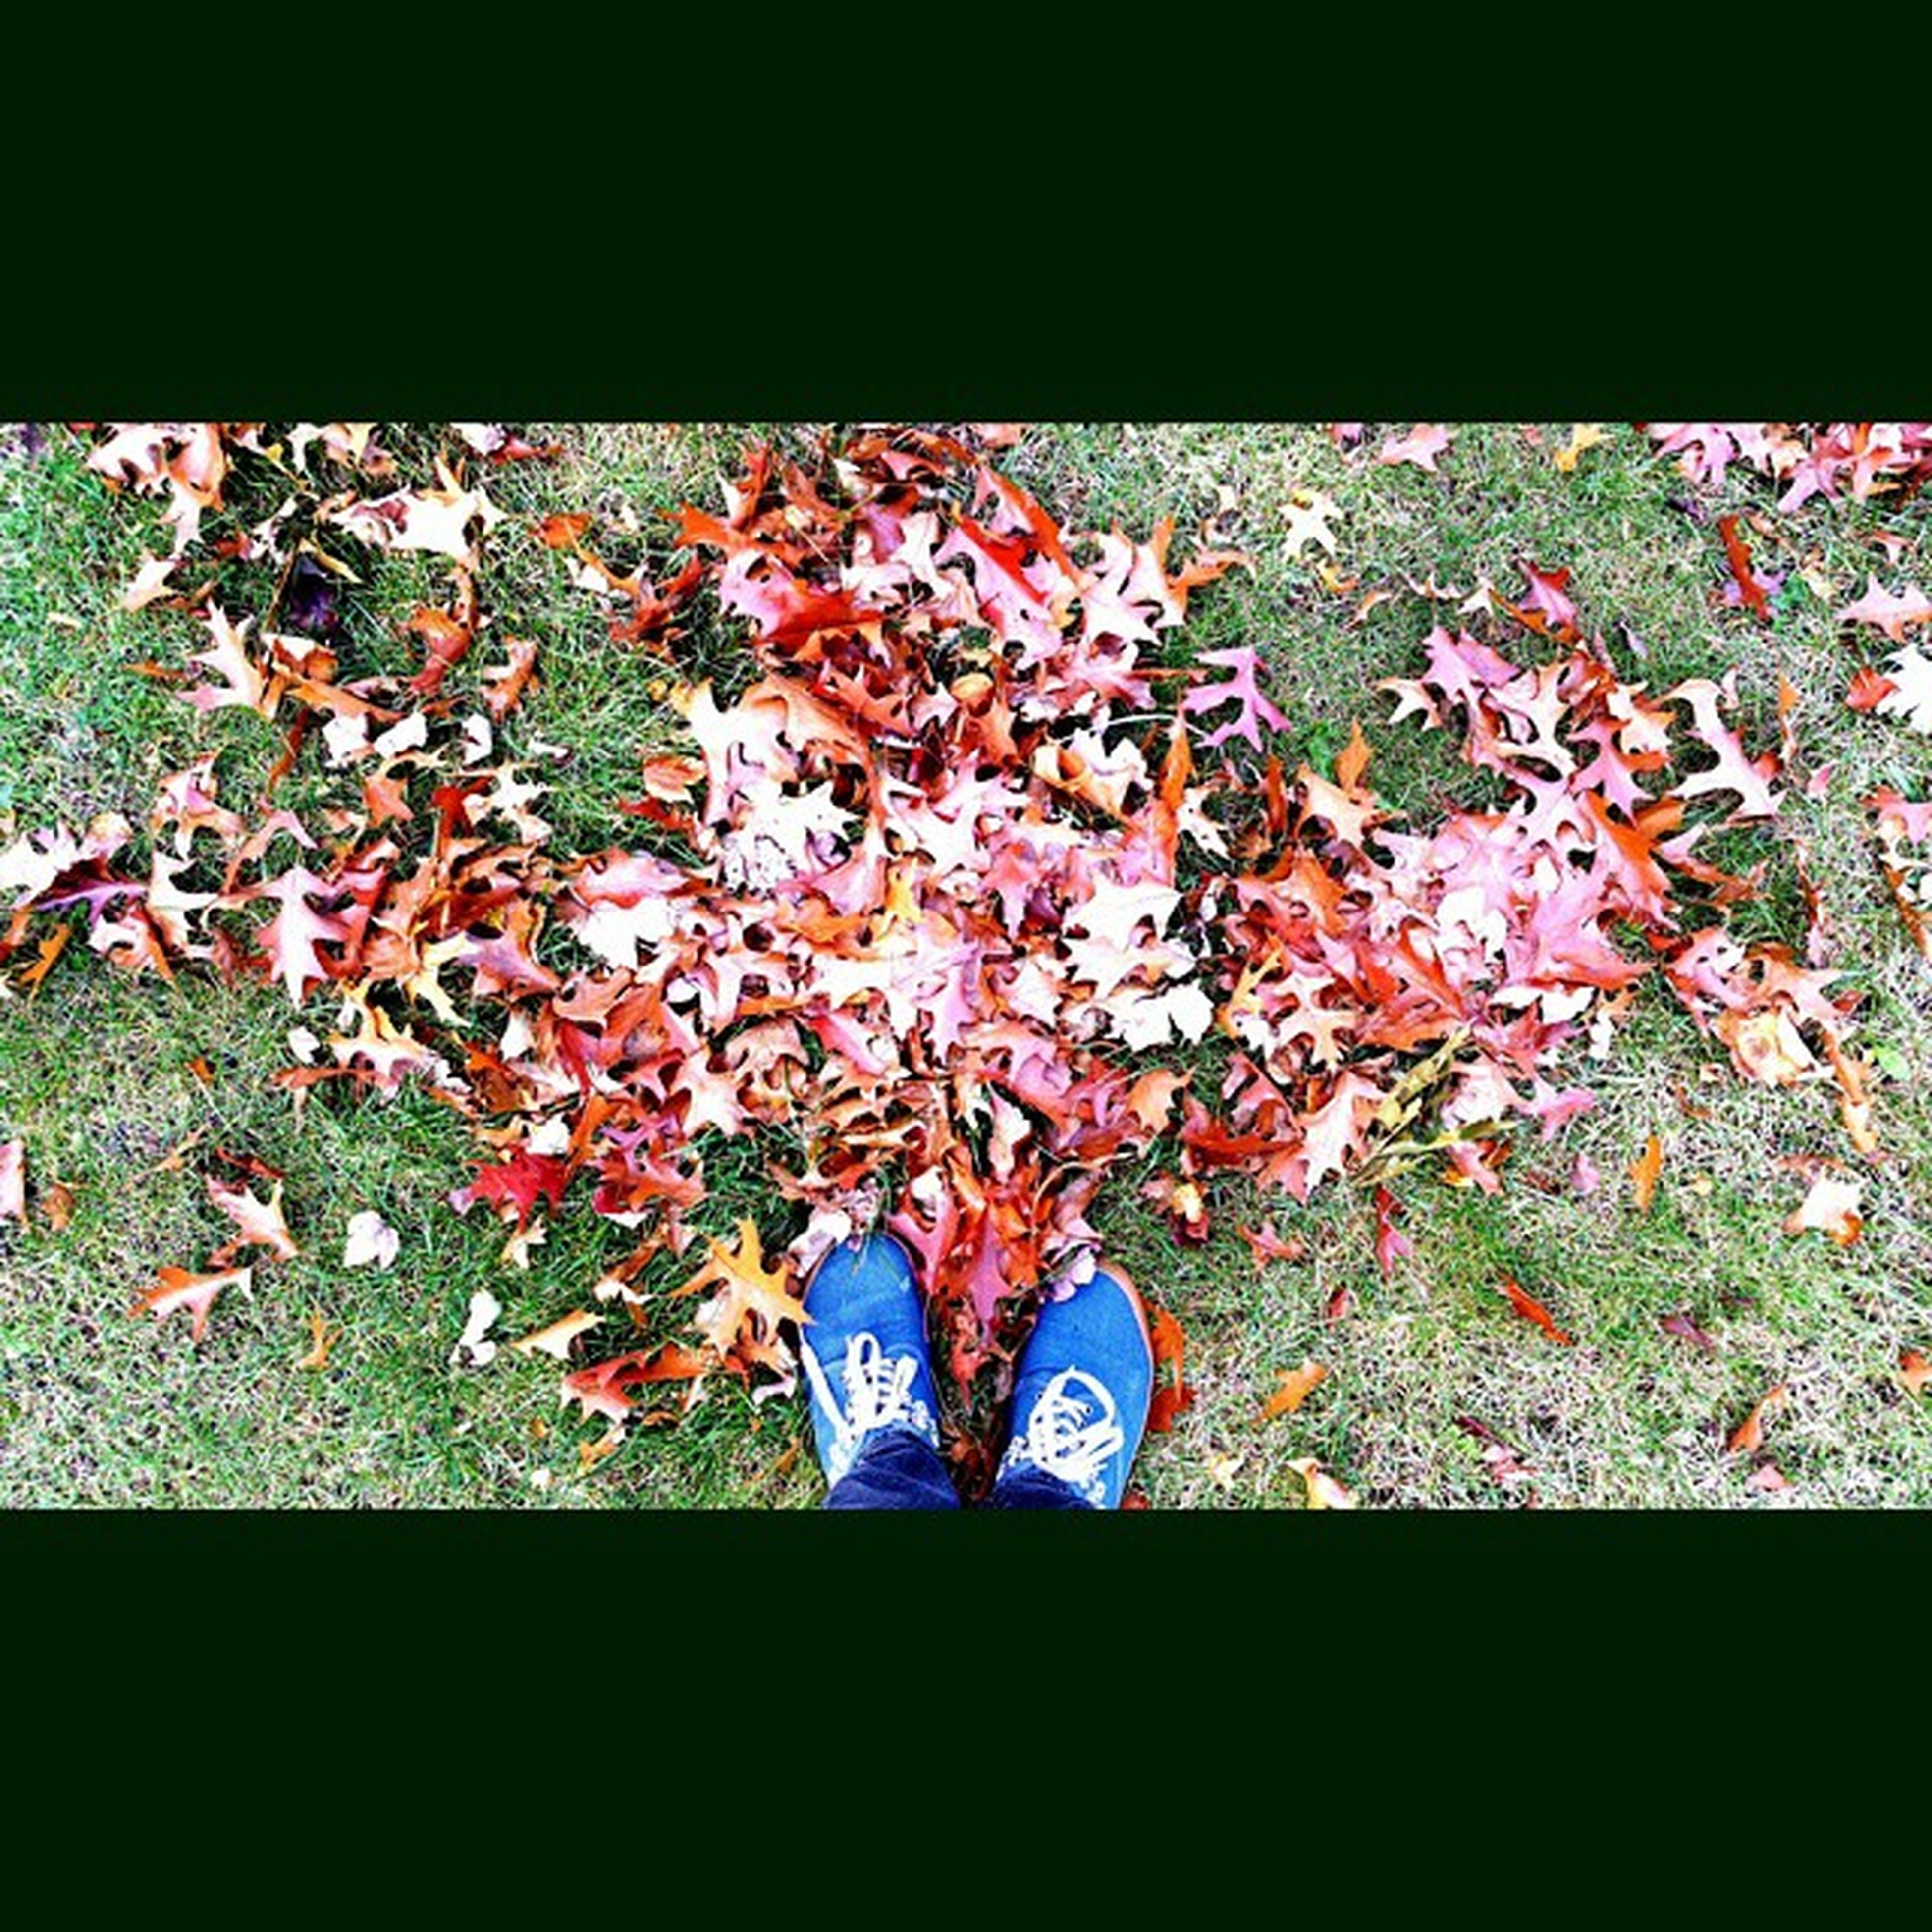 Why the fuck am i standing over the pile of leaves looking like an idiot you say !! Because instagram ... yeah and well it looked nice and thought i might get instafamous . Sigh !! Leaves Takingpictures Hashtags Needanewdistraction instagramisgettingboringentertainmebitch